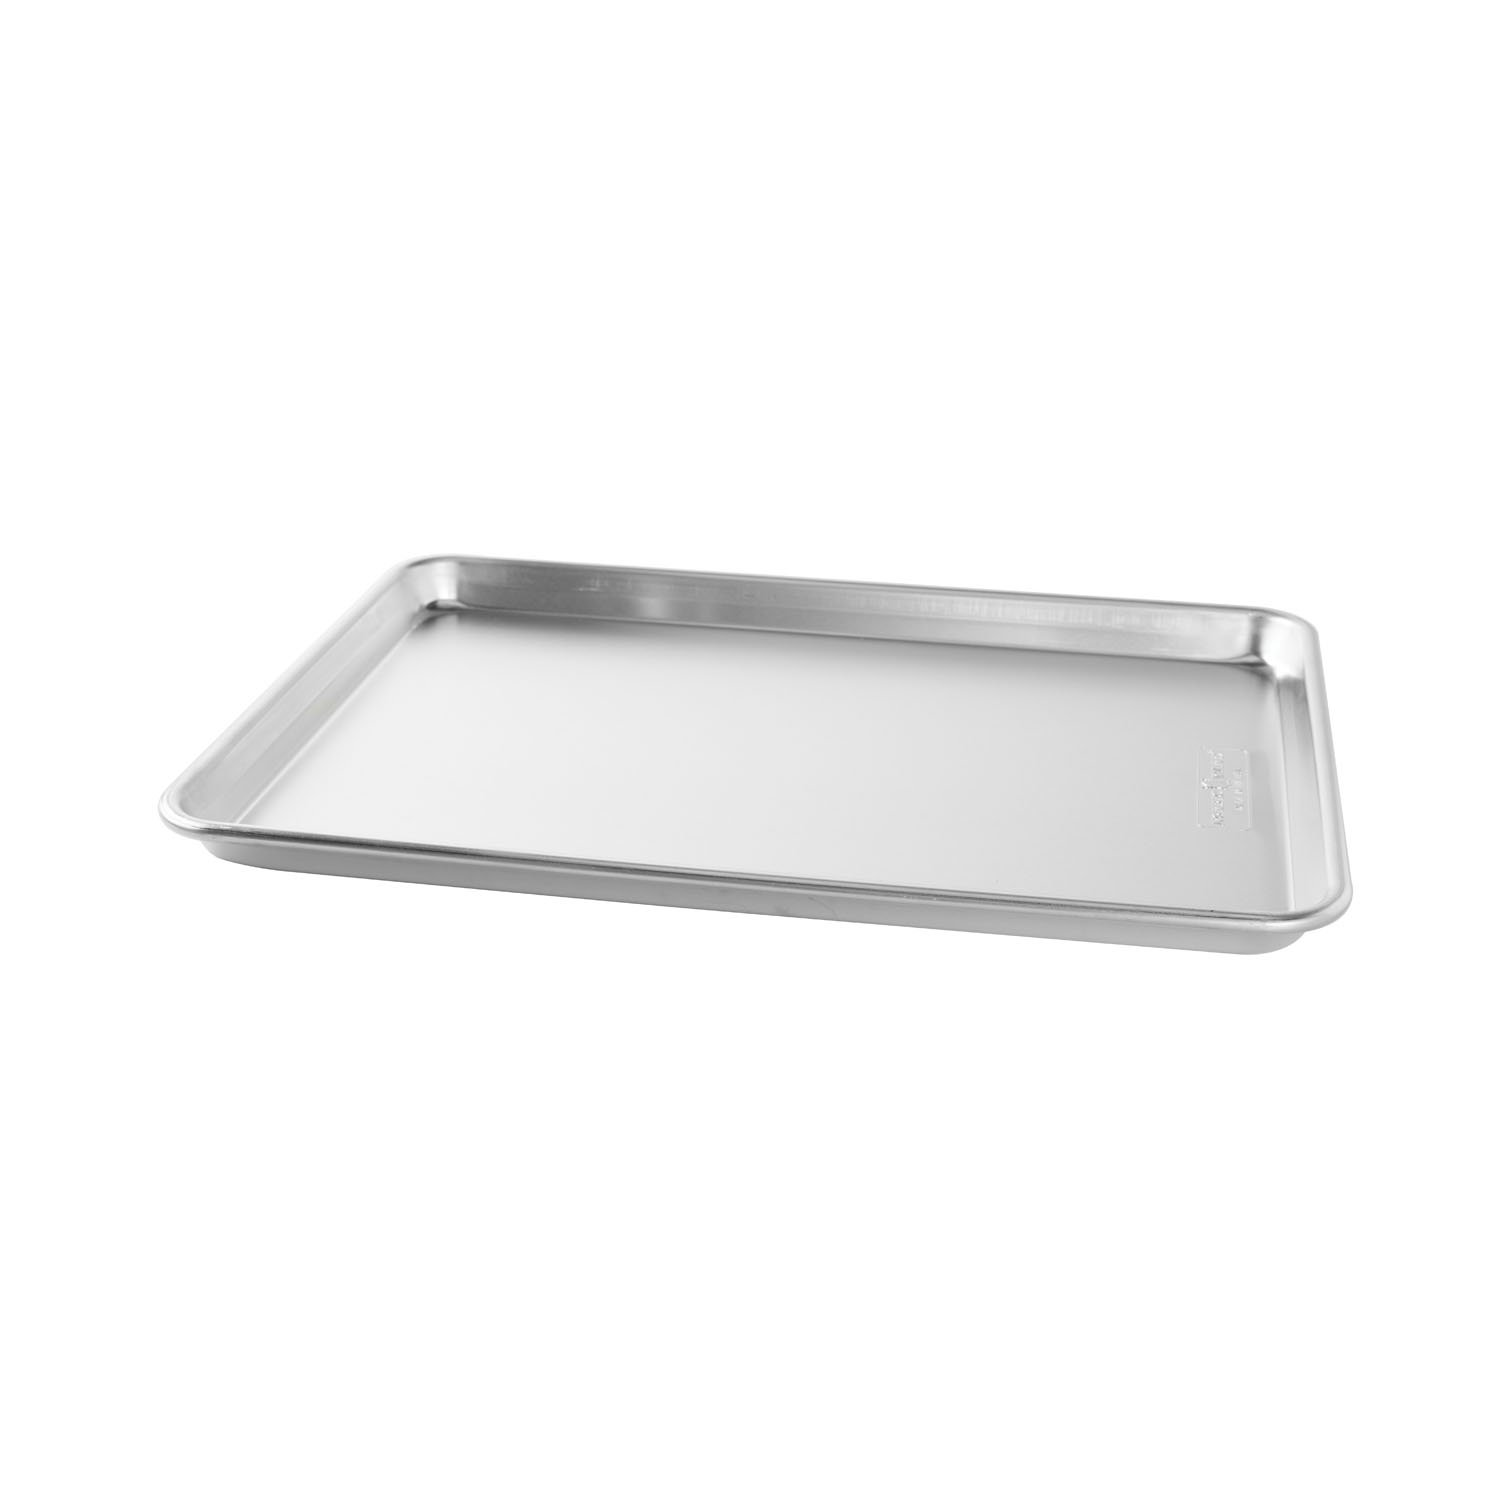 The Nordic ware aluminum natural commercial baker's half sheet